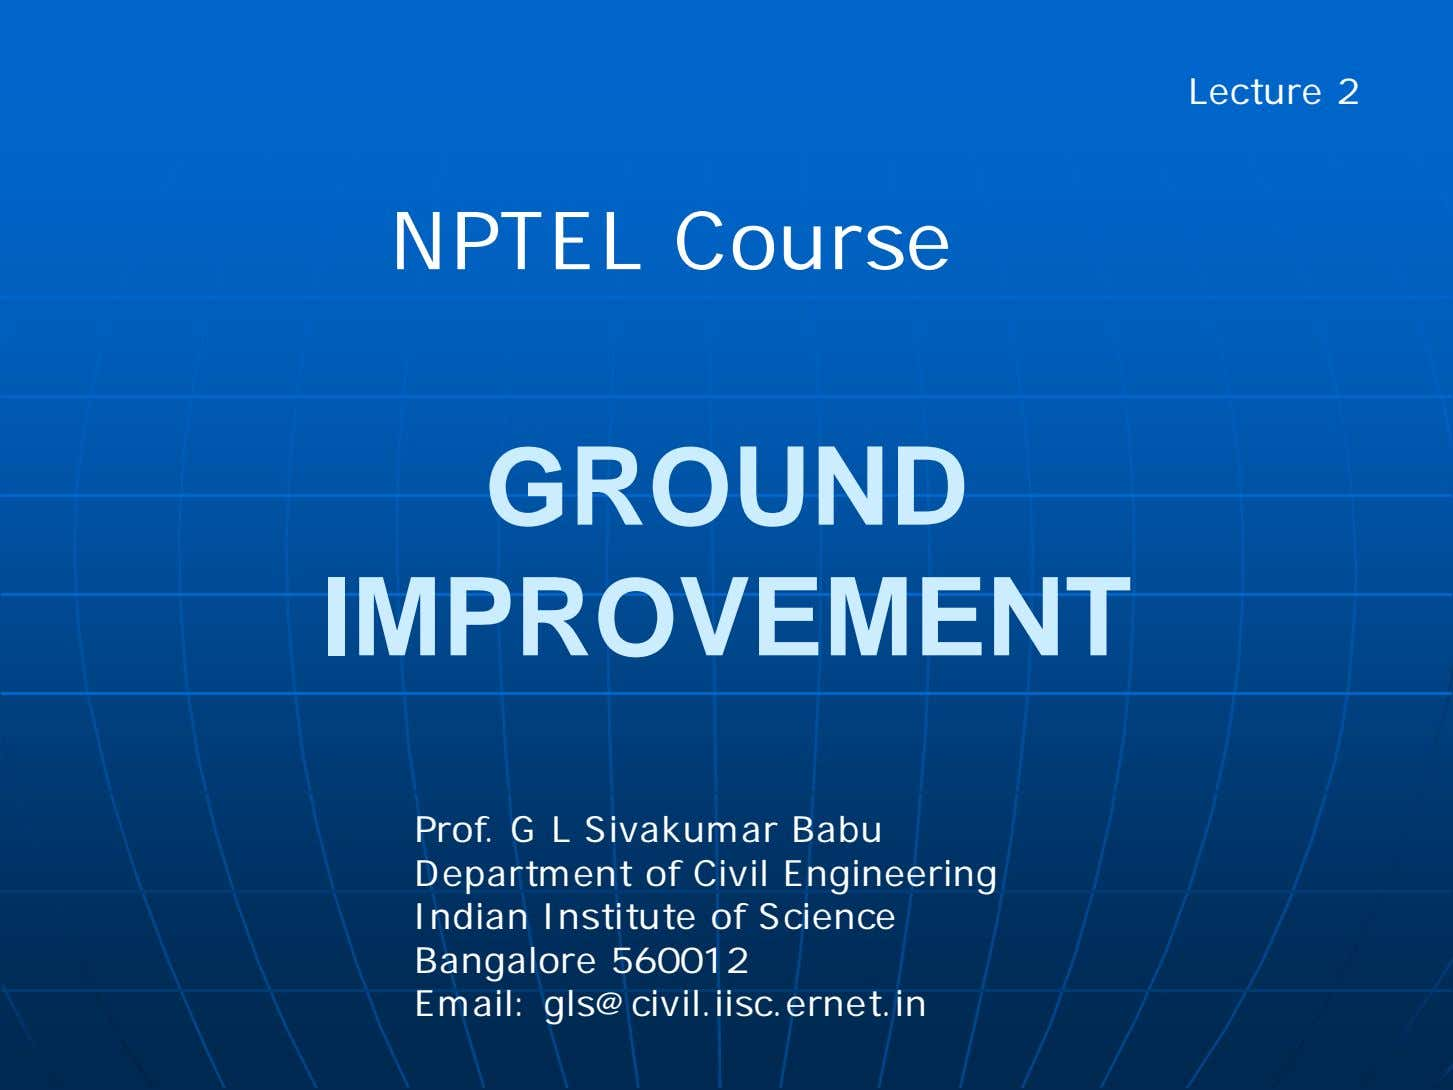 Lecture 2 NPTEL Course GROUND IMPROVEMENT Prof. G L Sivakumar Babu Department of Civil Engineering